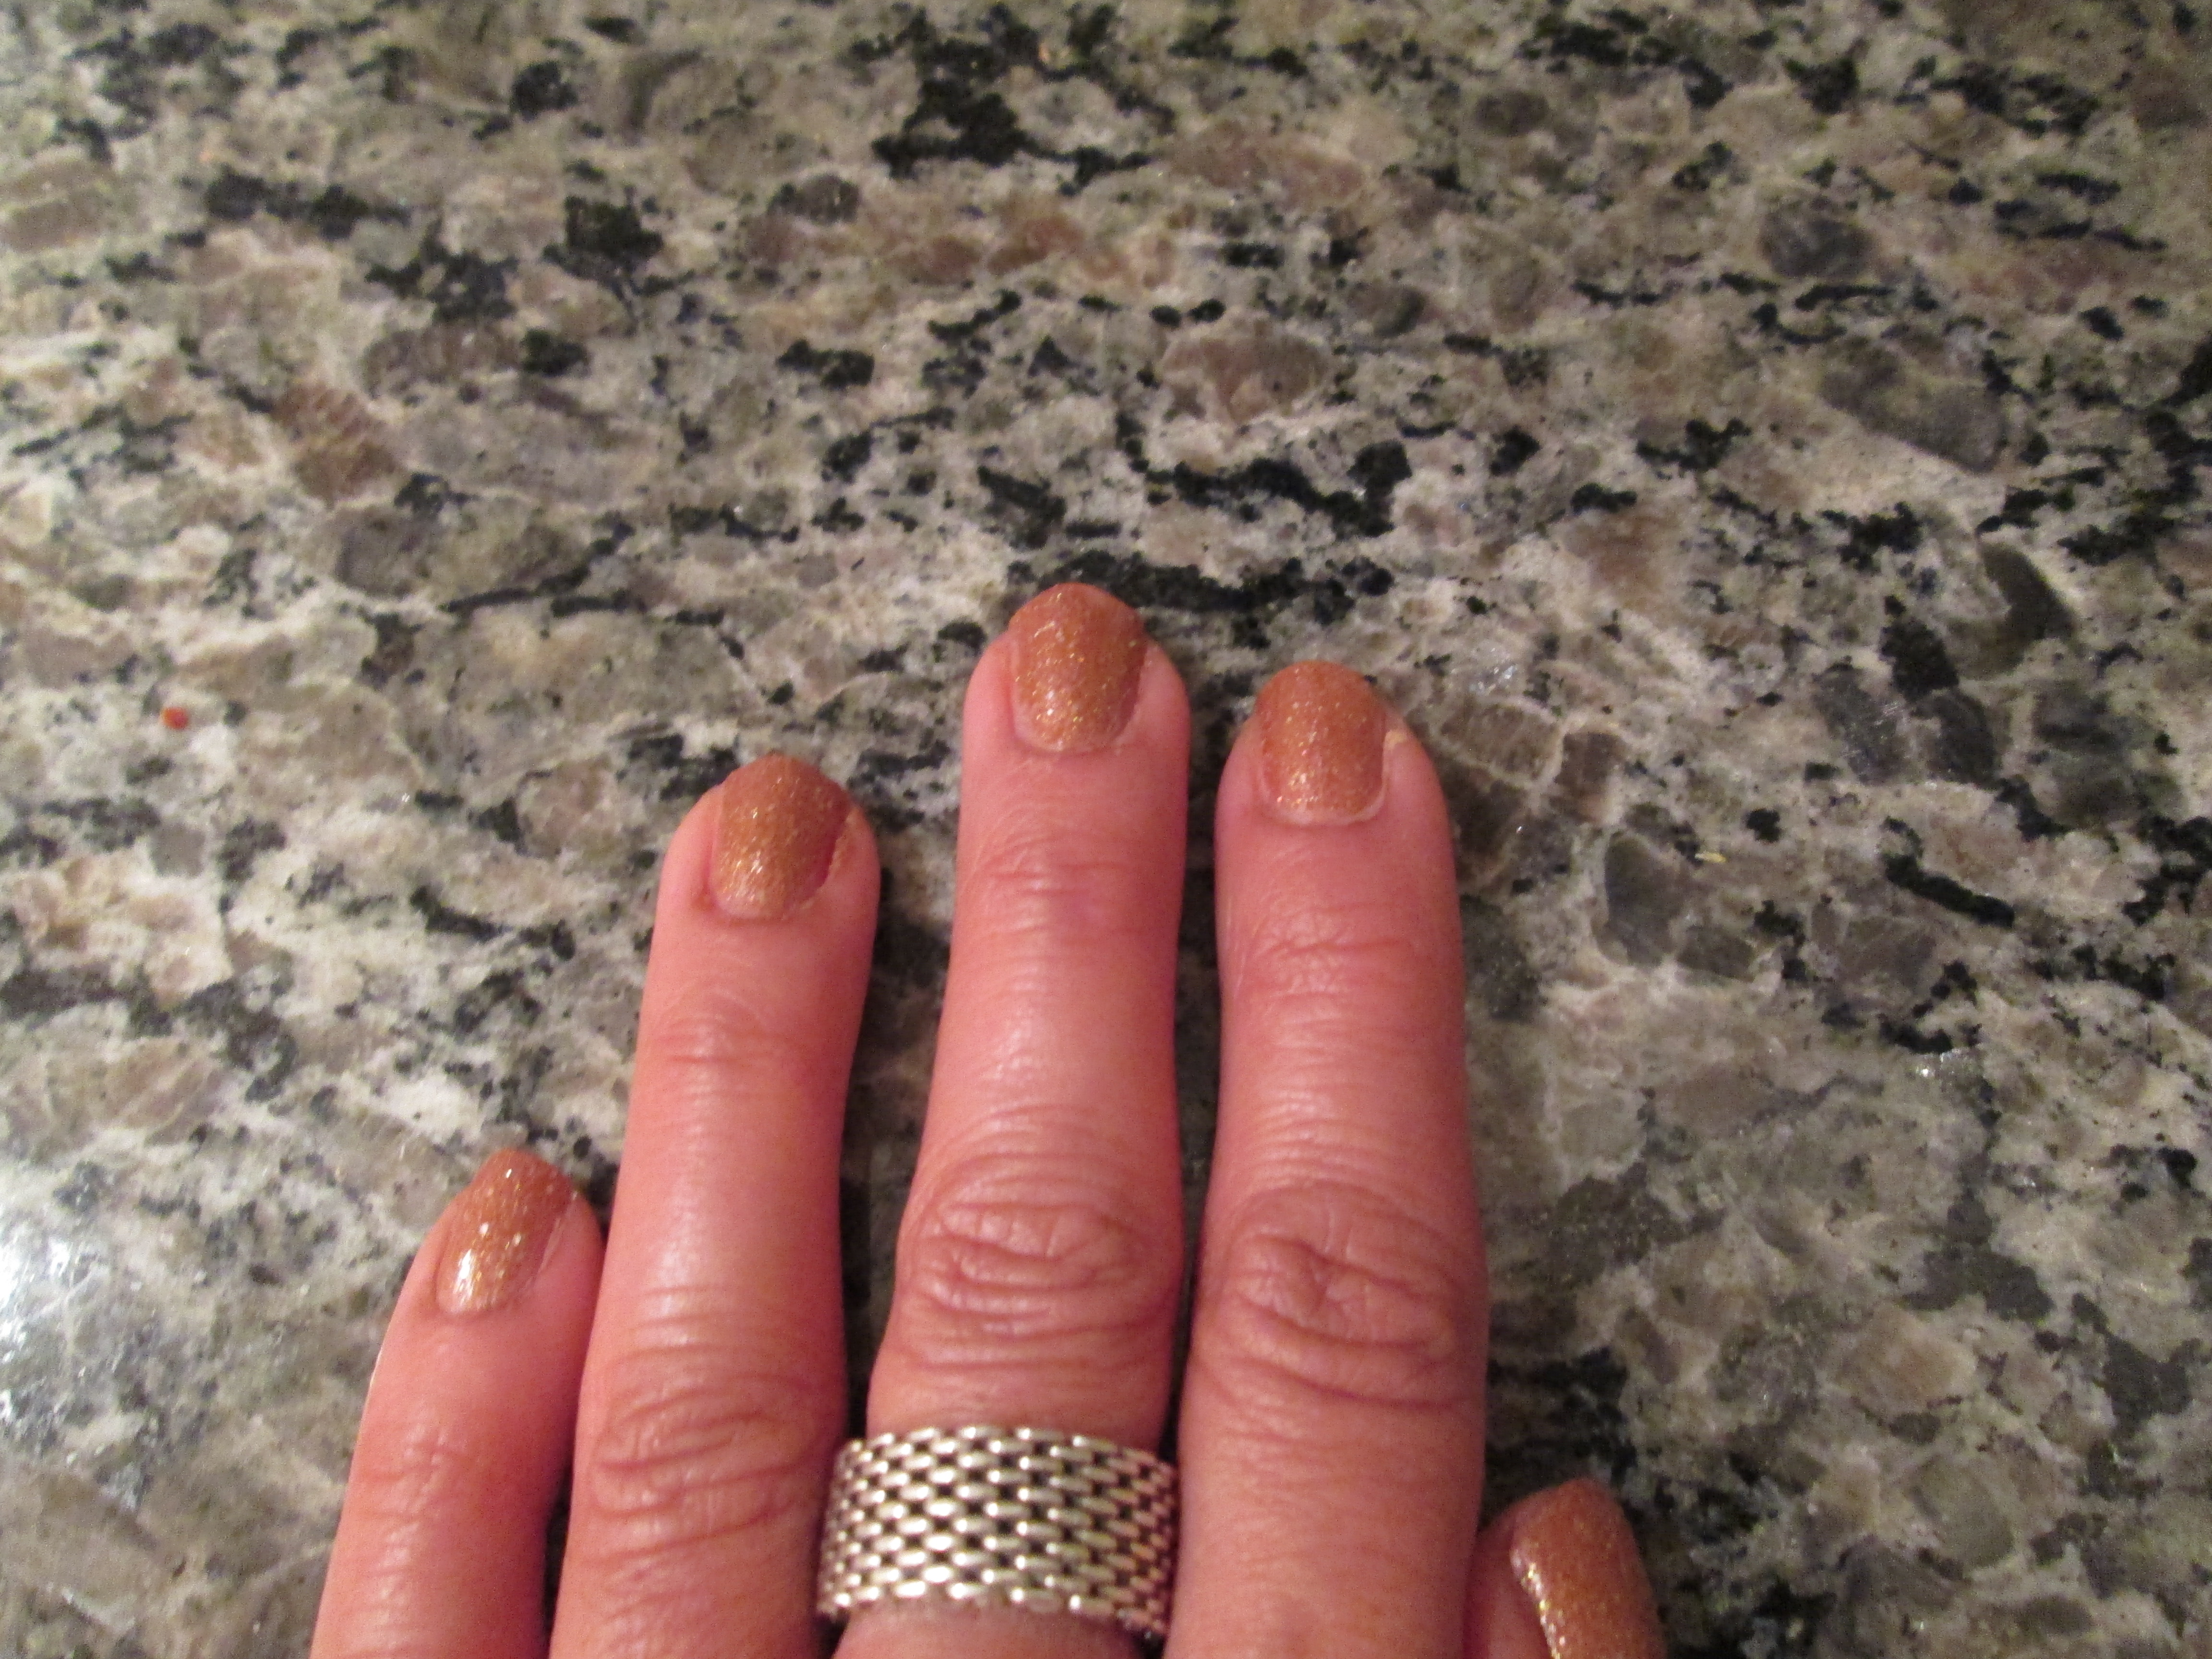 Trend Report: Wearing Glittery Nail Polish in a Professional ...